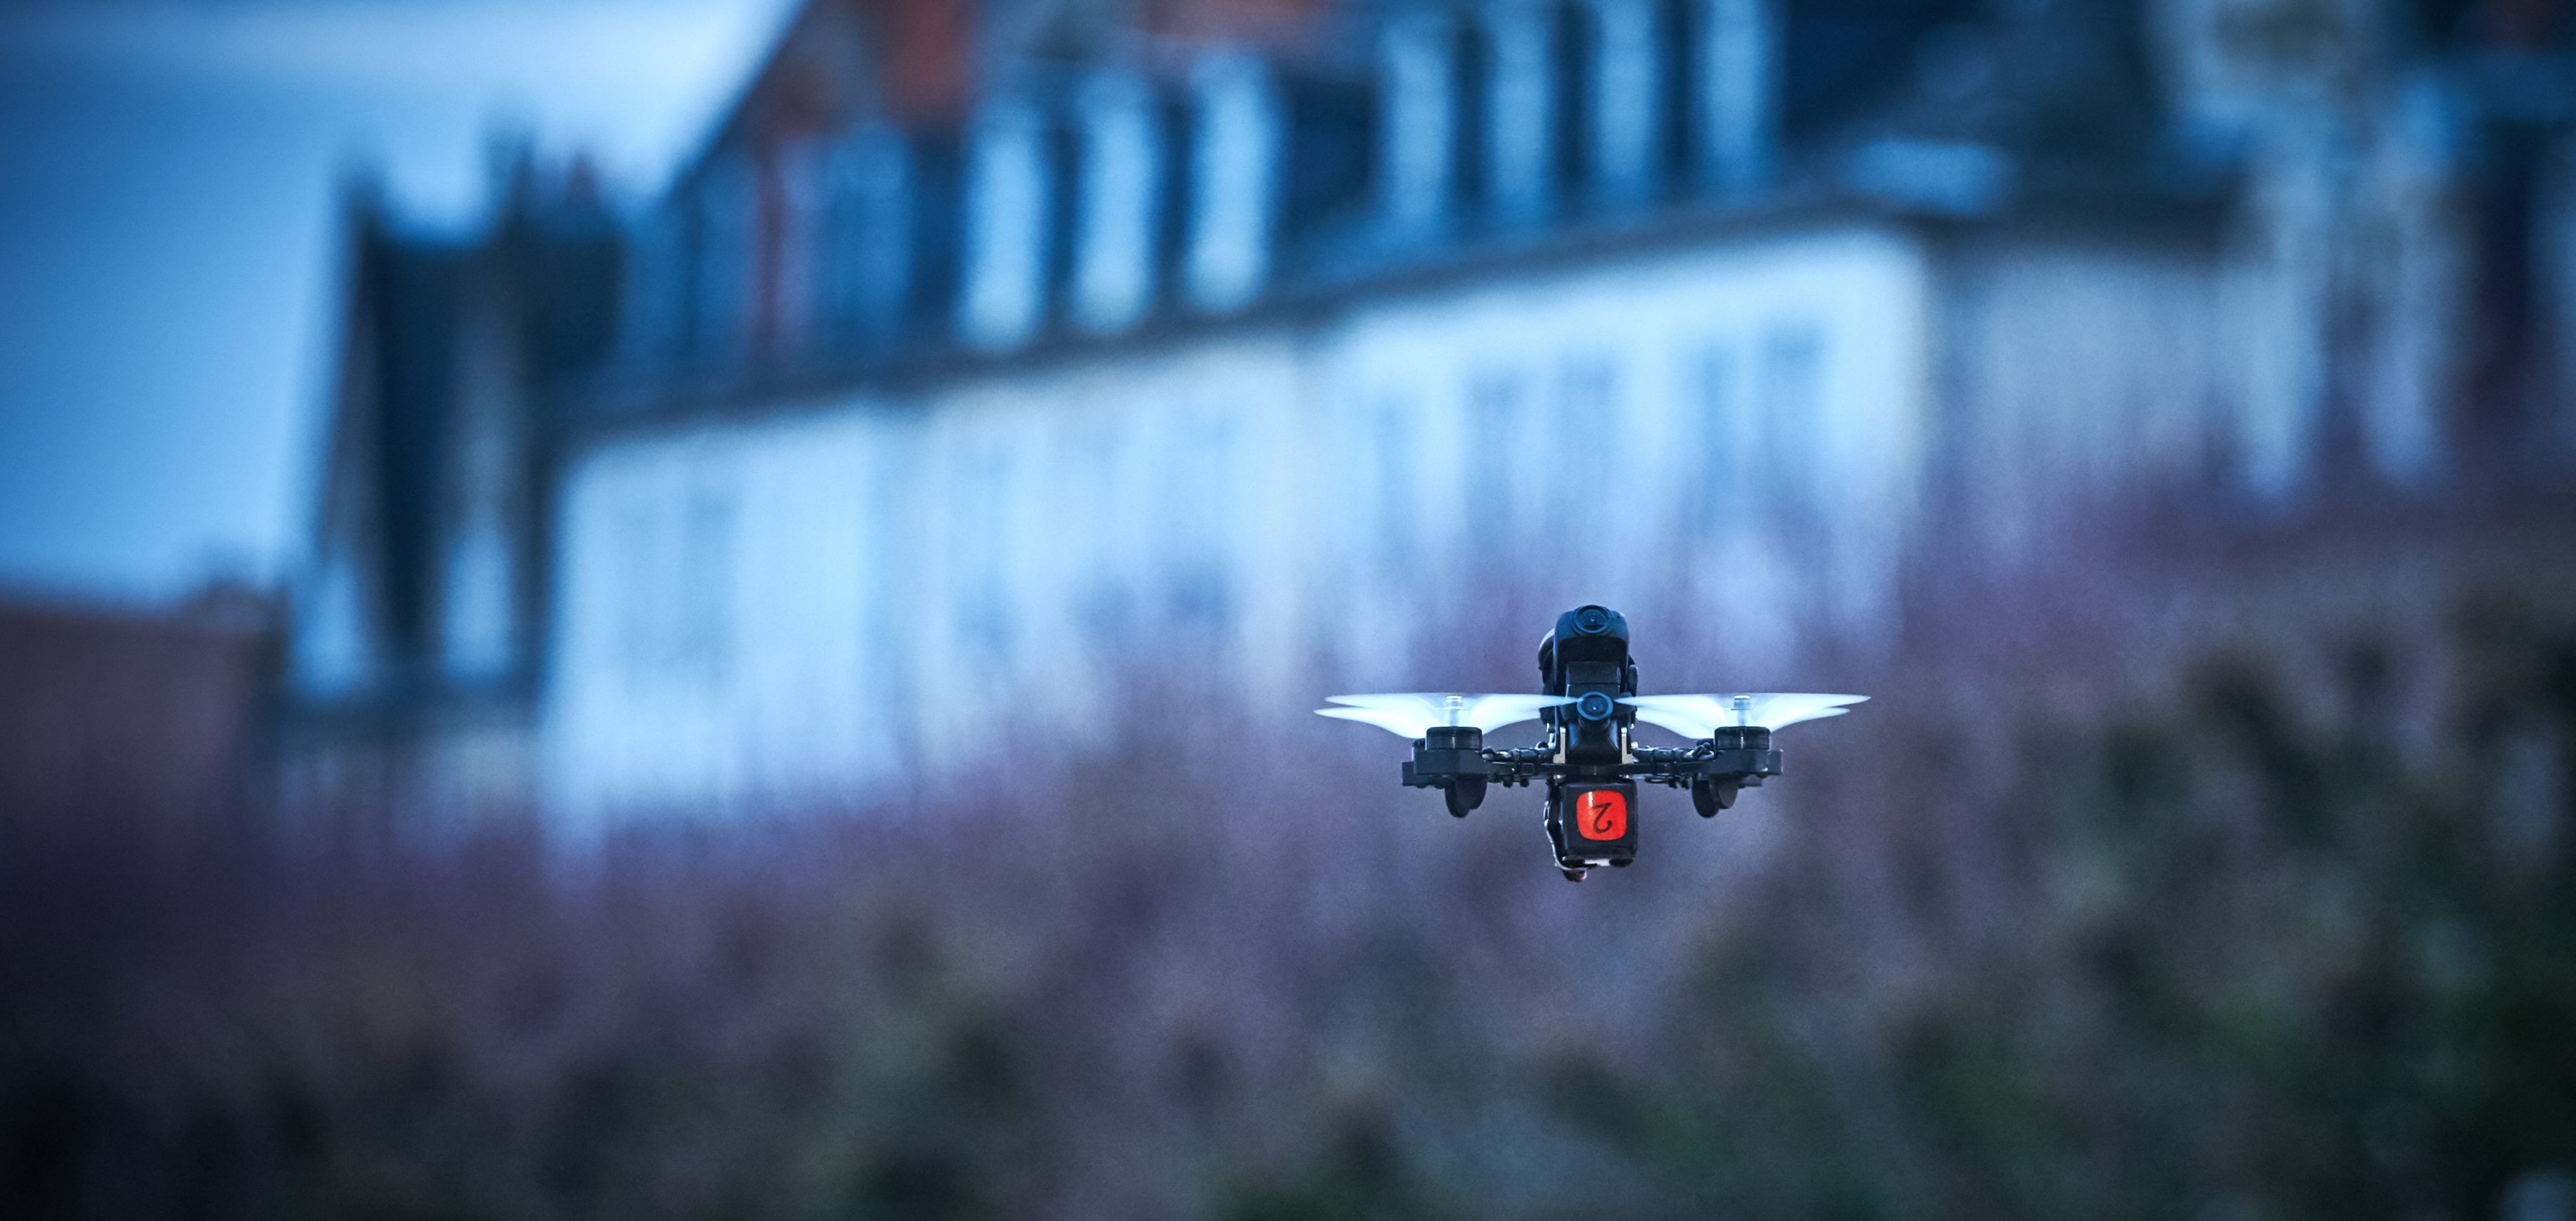 Where Can I Fly a Drone?